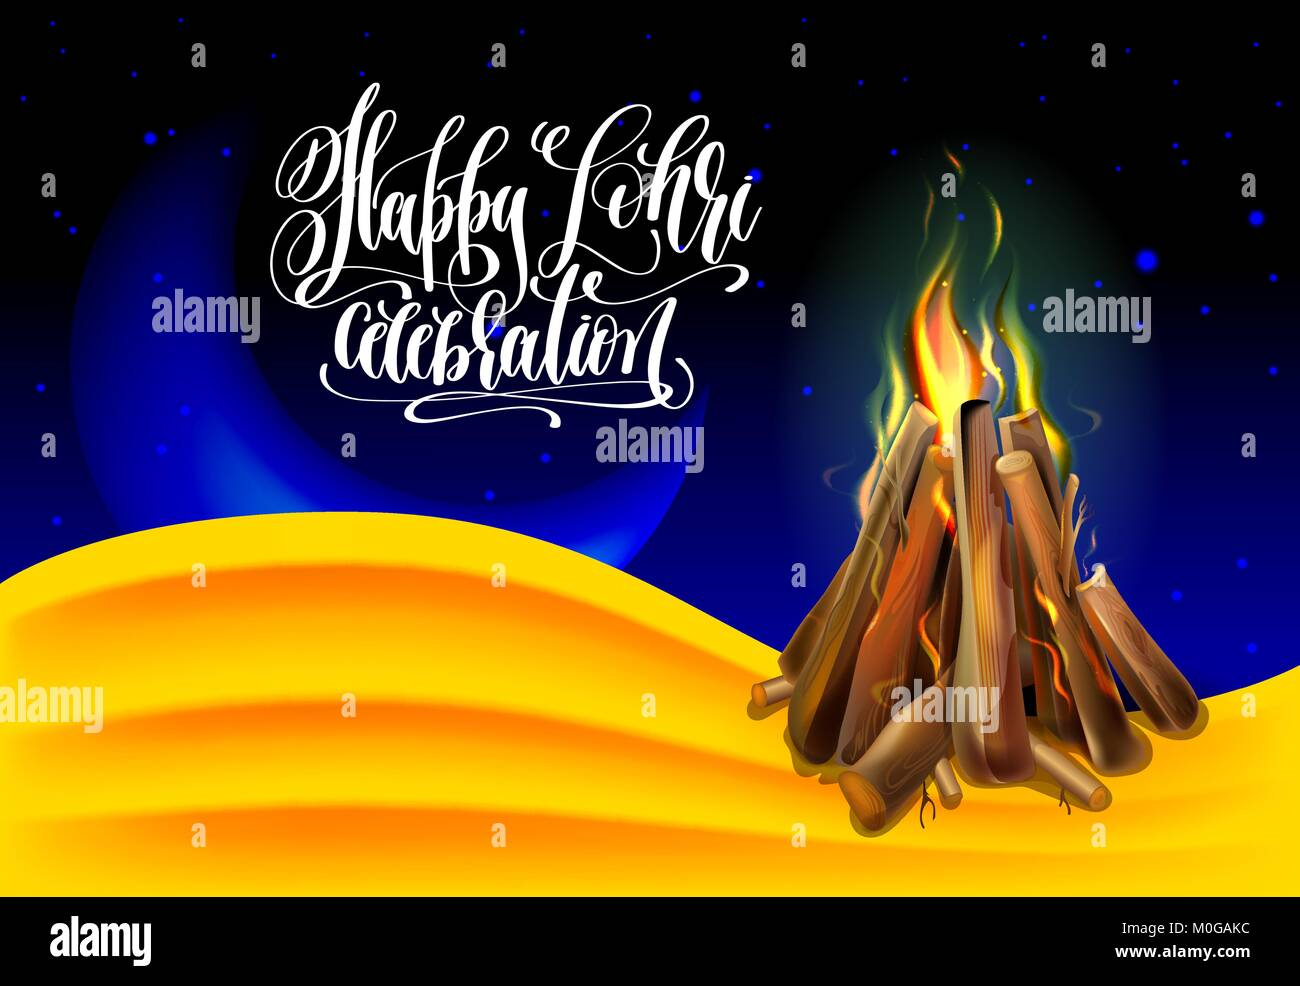 Happy Lohri celebration greeting card to indian winter holiday with hand lettering text and realistic burning bonfire - Stock Vector